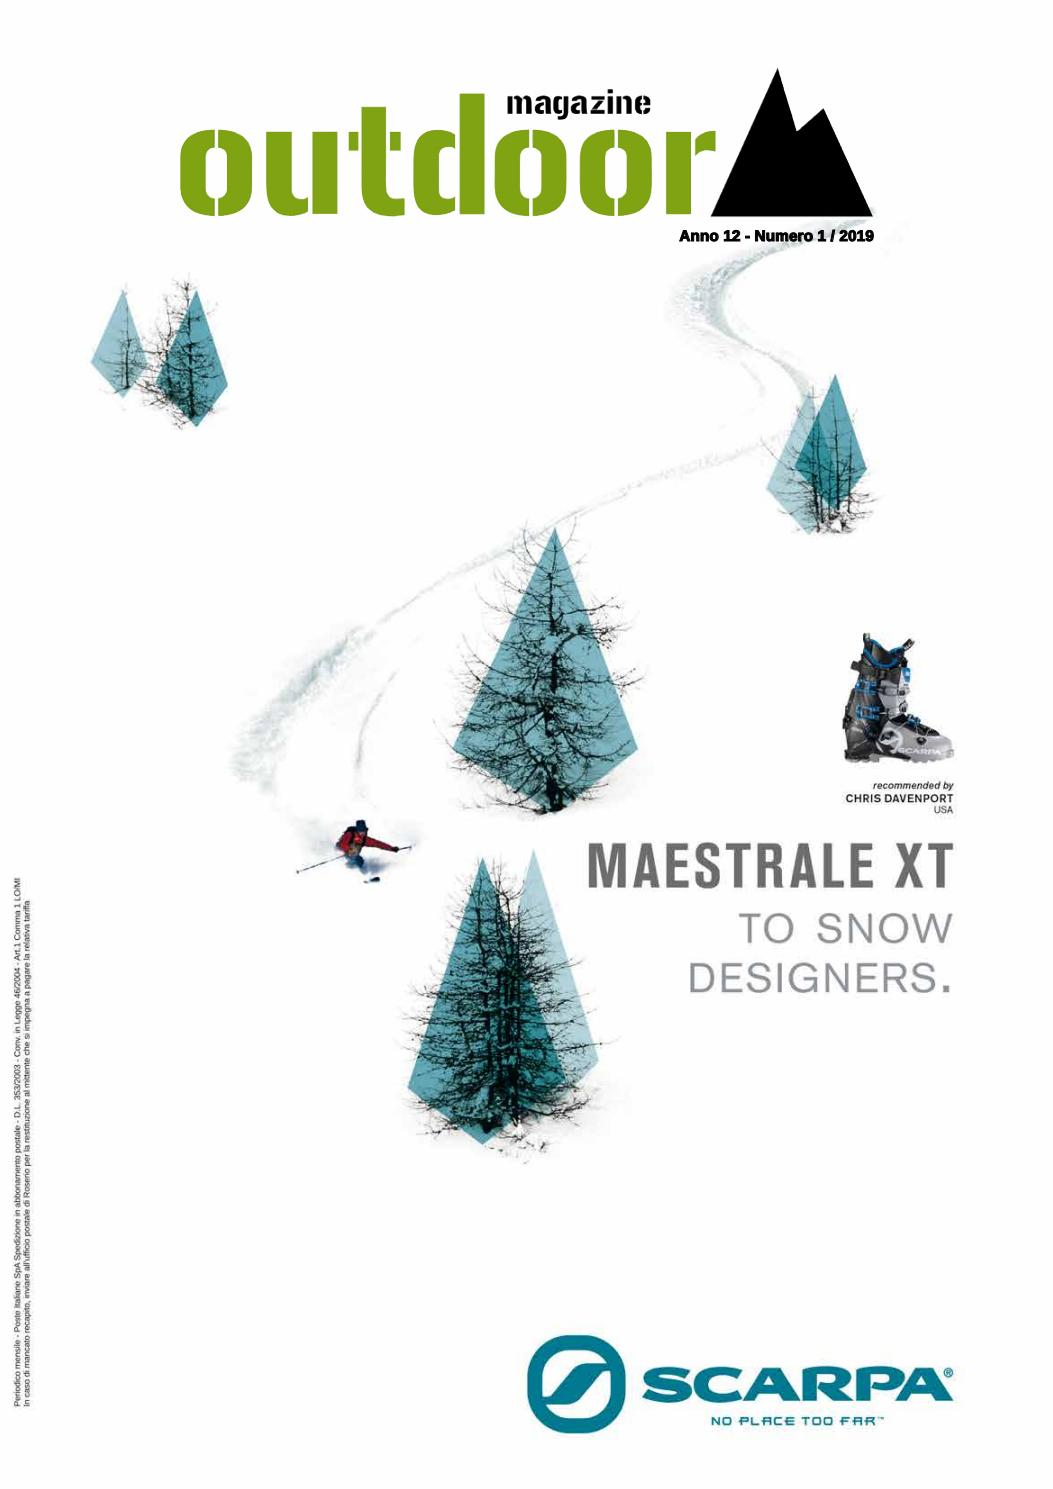 Sport Outdoor Mag By Issuu 2019 Press 1 VpqMUSzG